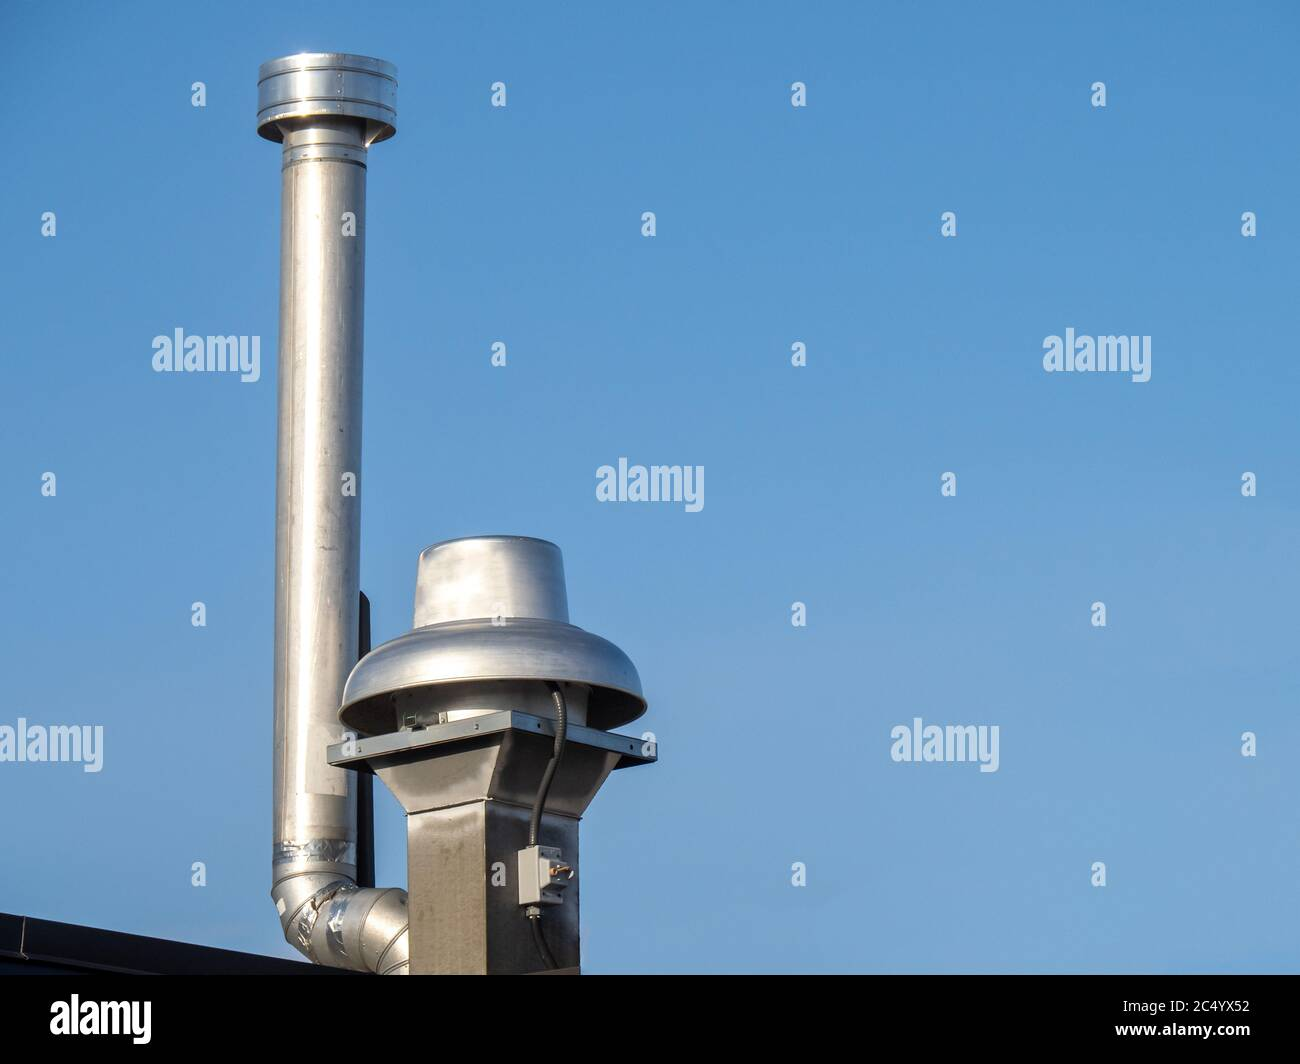 A Restaurant Kitchen Exhaust Vent Grease Trap And Chimney Stock Photo Alamy